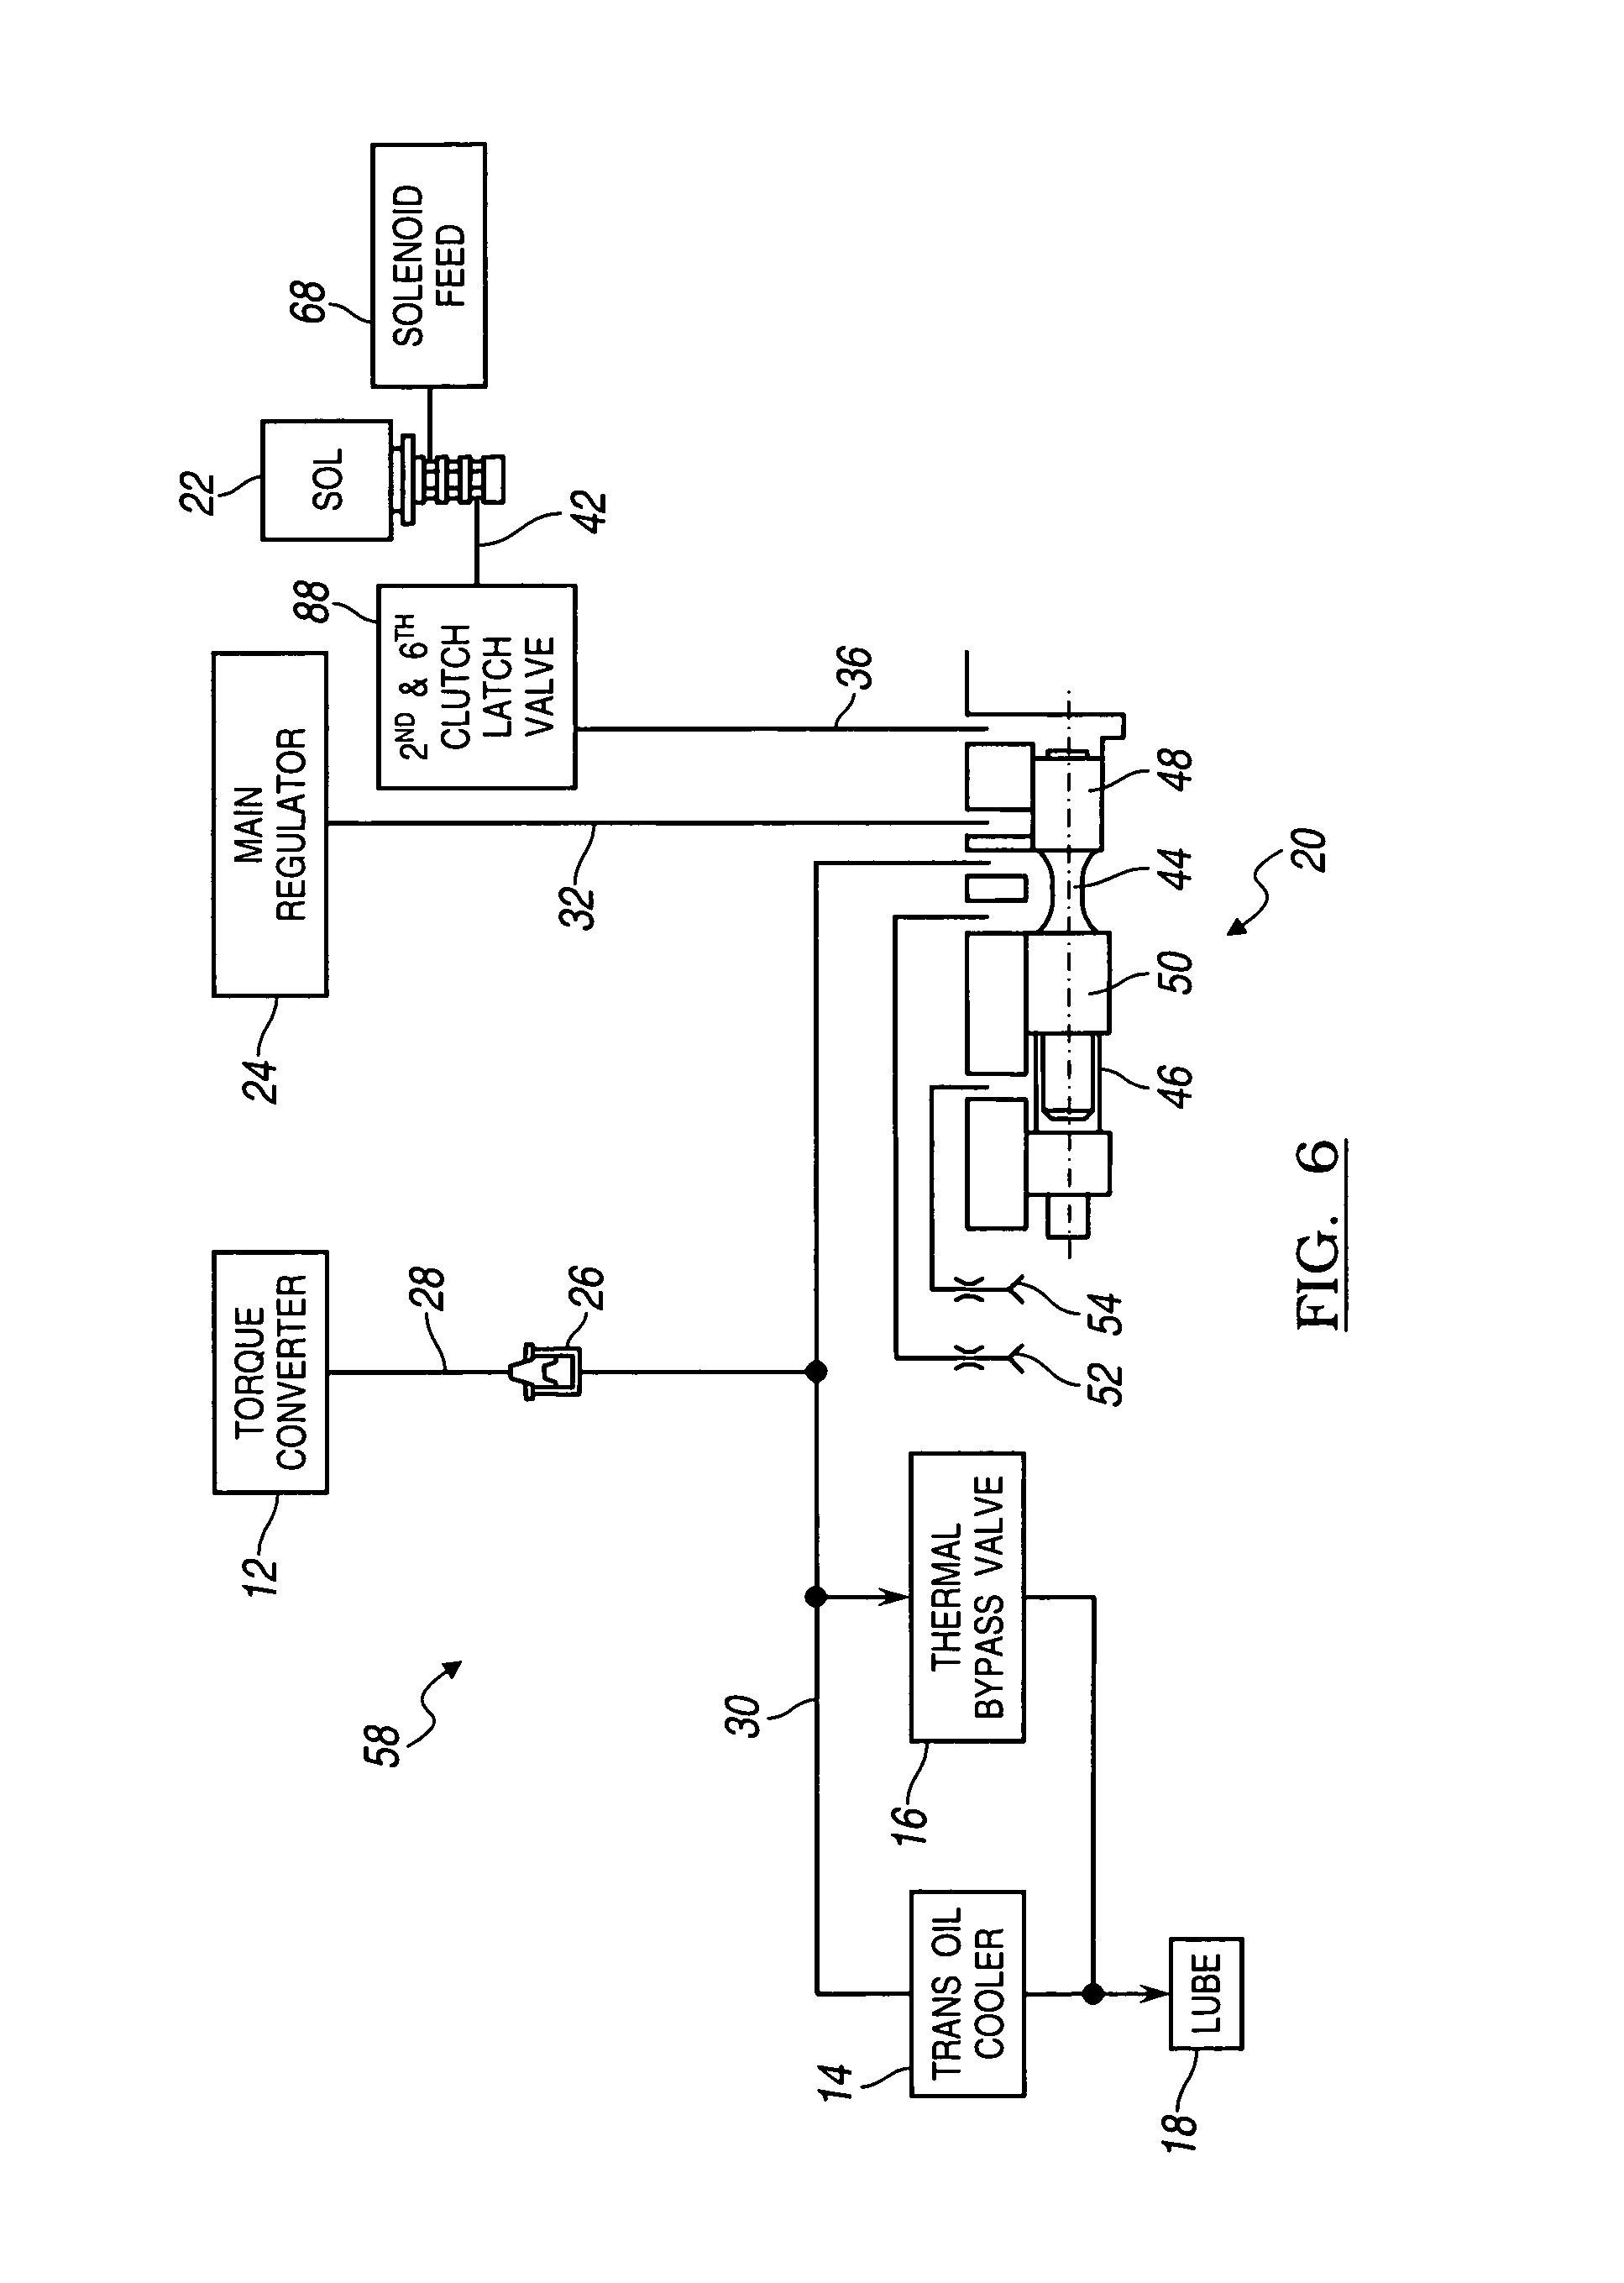 Schematics e together with Transmission Cooler Lines Flow Direction 37080 likewise Mazda Capella 626 MX6 Radiator further ShowAssembly additionally Diagrams. on external transmission cooler